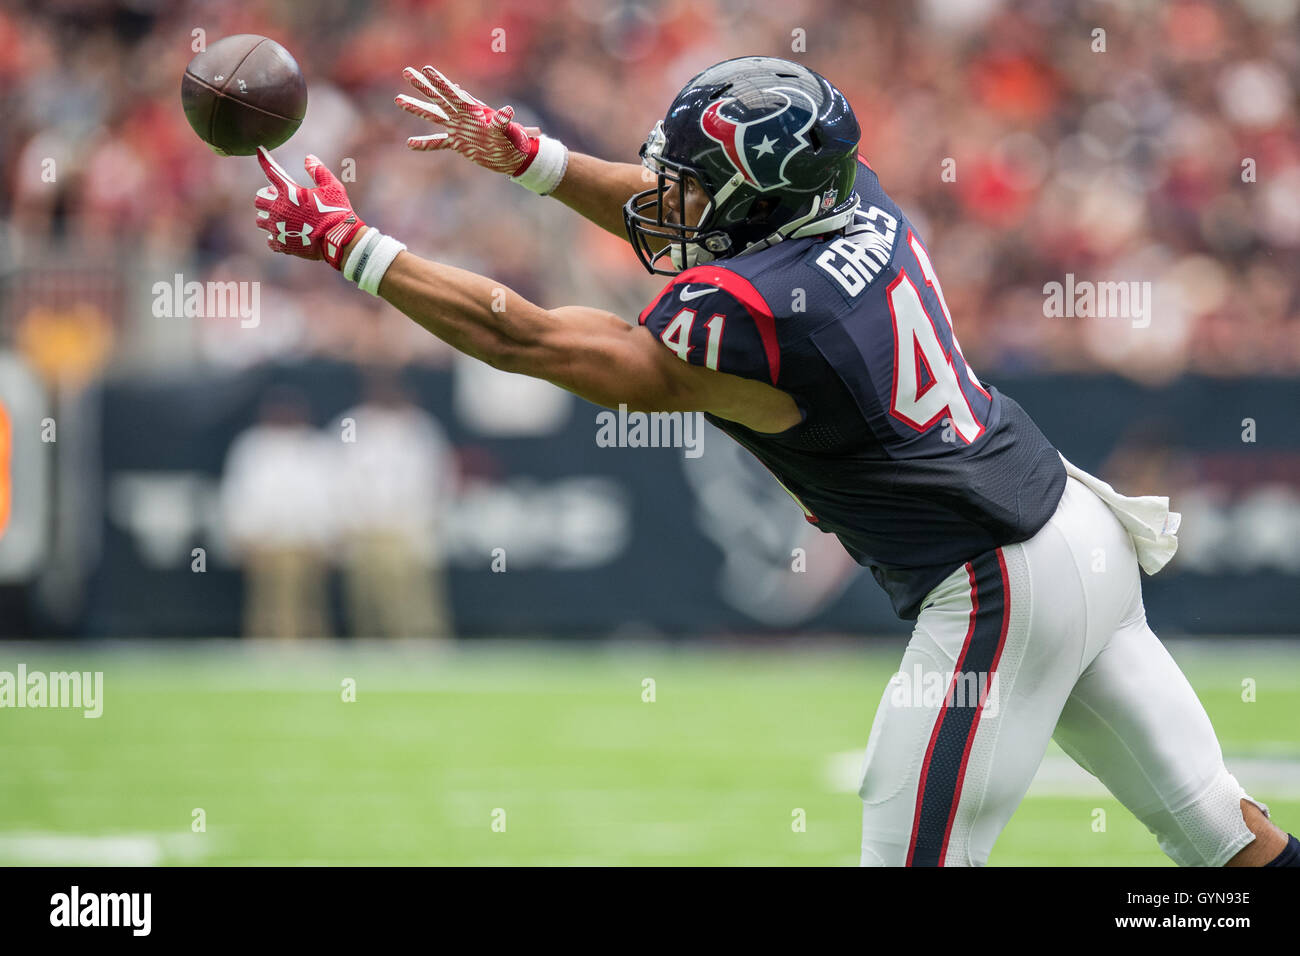 Houston, Texas, EE.UU. 18 Sep, 2016. Houston Texans volver corriendo Jonathan Grimes (41) intenta hacer una captura Imagen De Stock